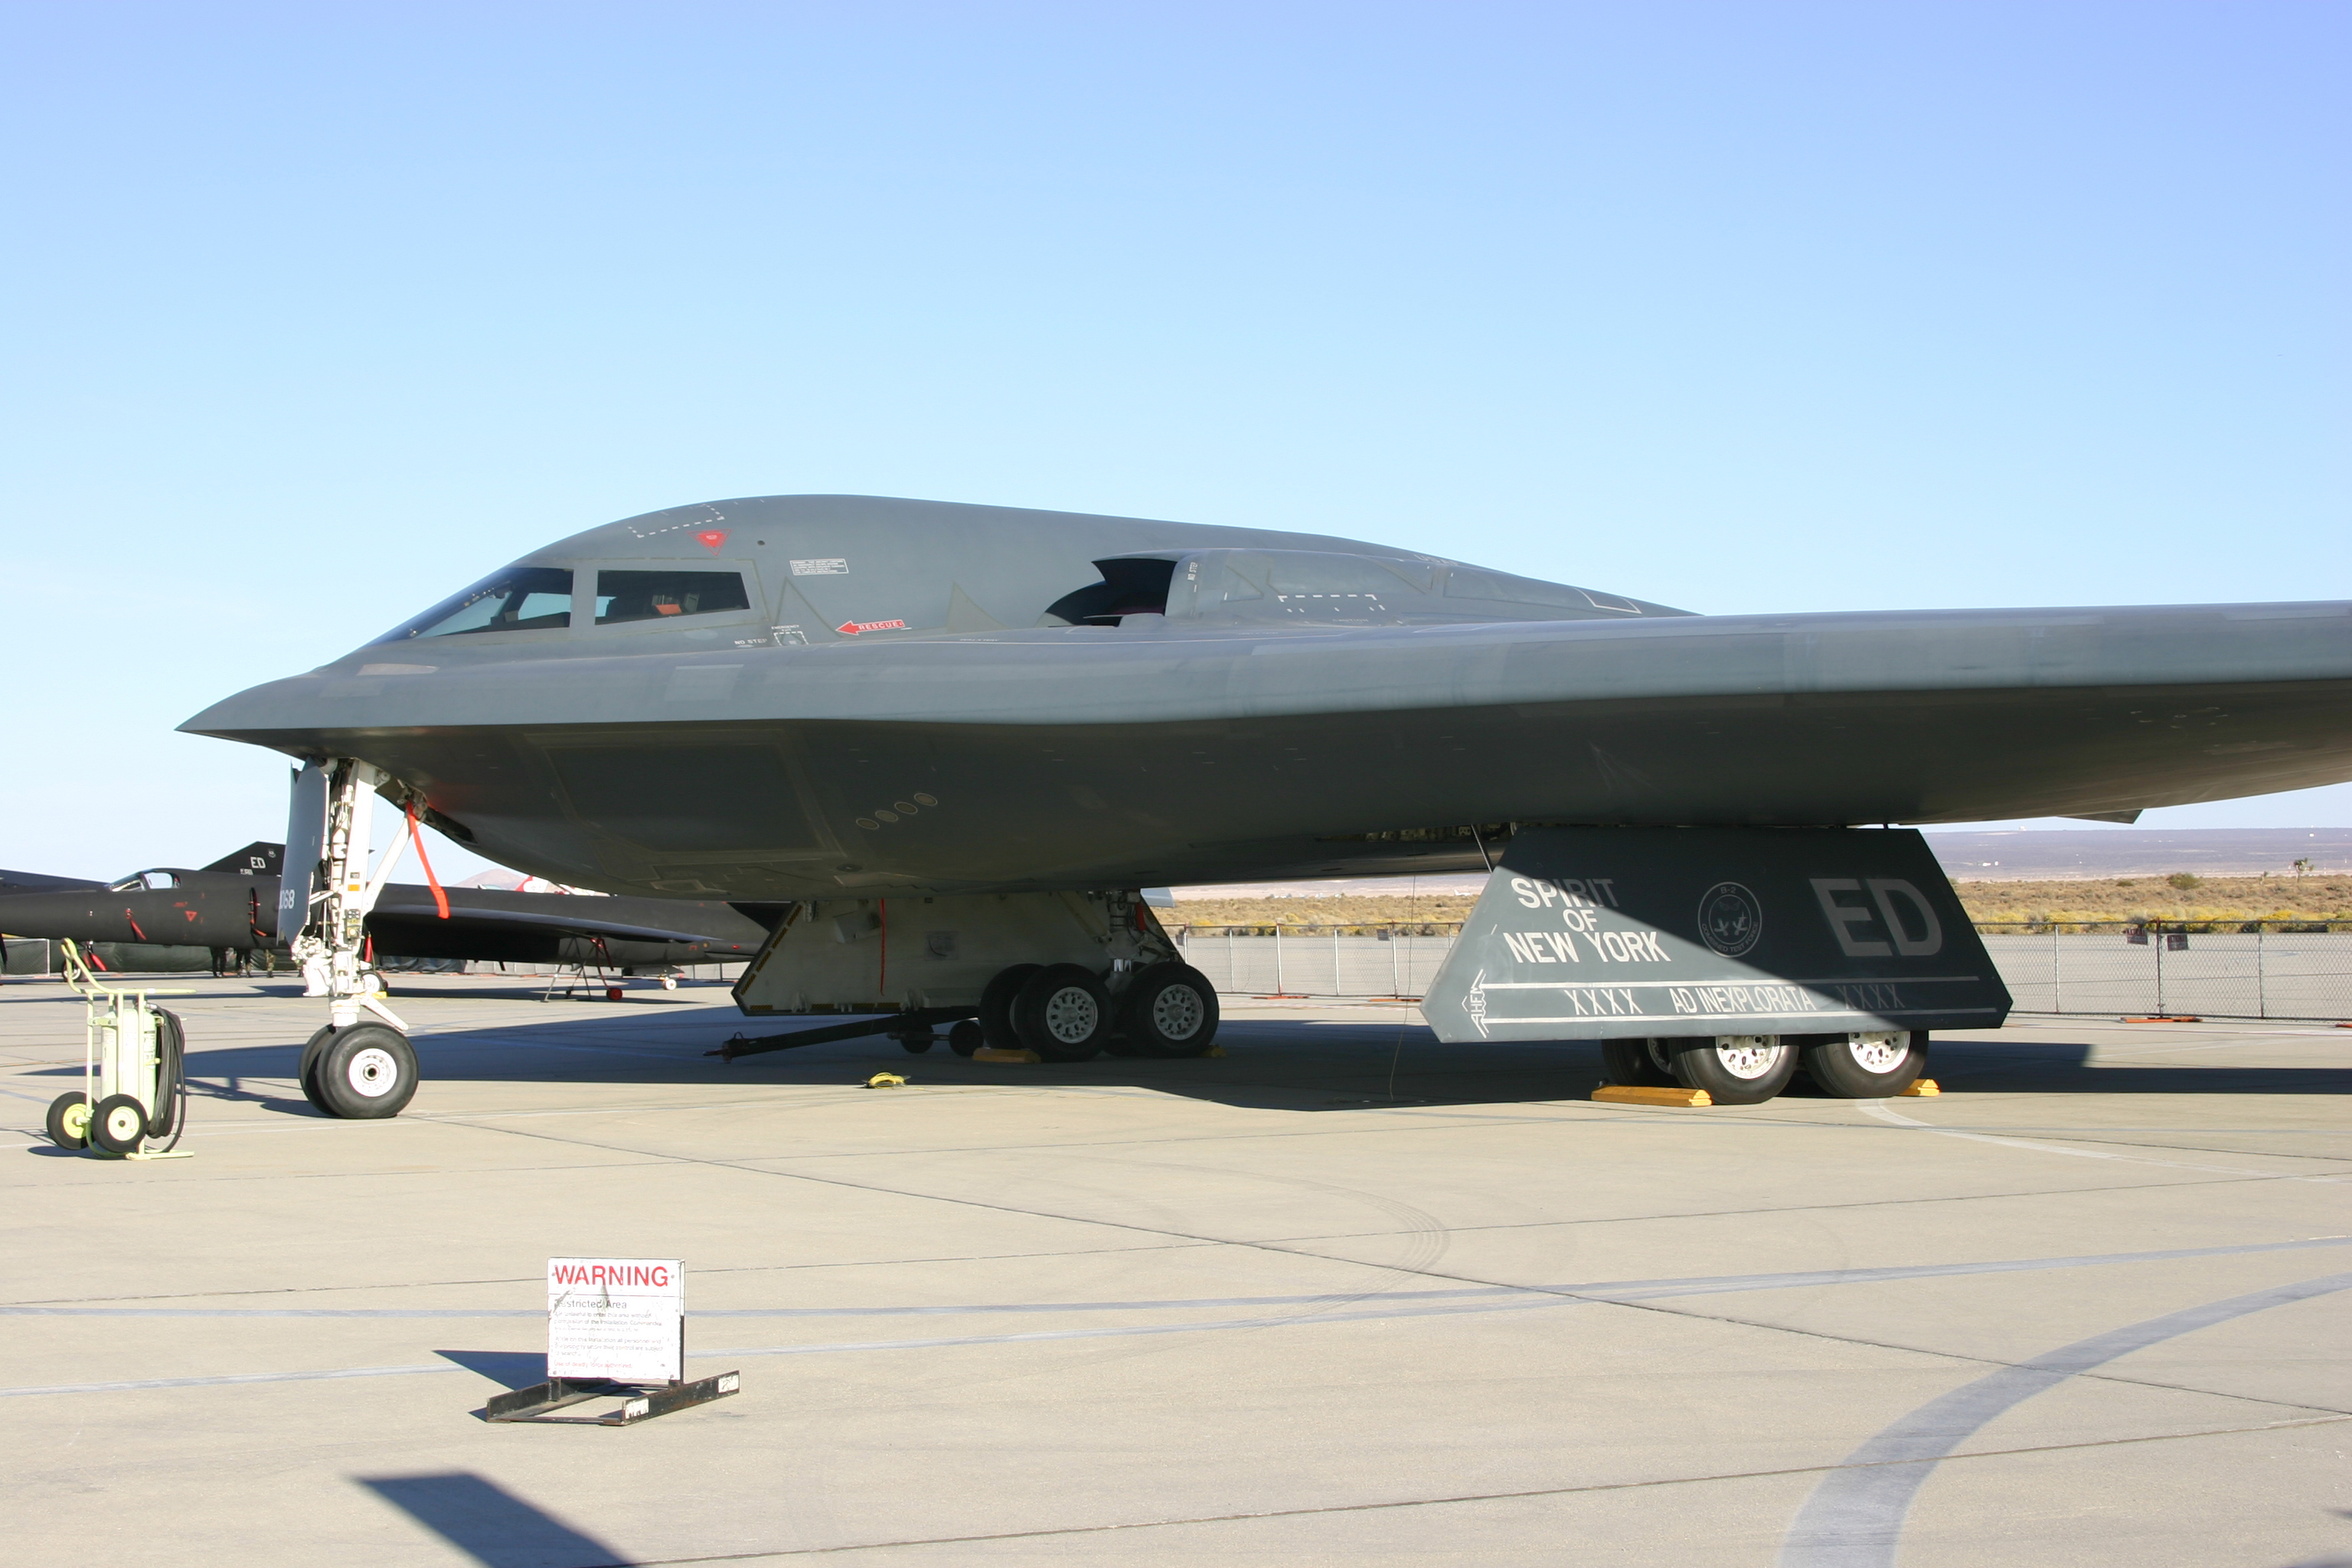 http://upload.wikimedia.org/wikipedia/commons/2/23/EAB_2006_USAF_B-2_Spirit.jpg